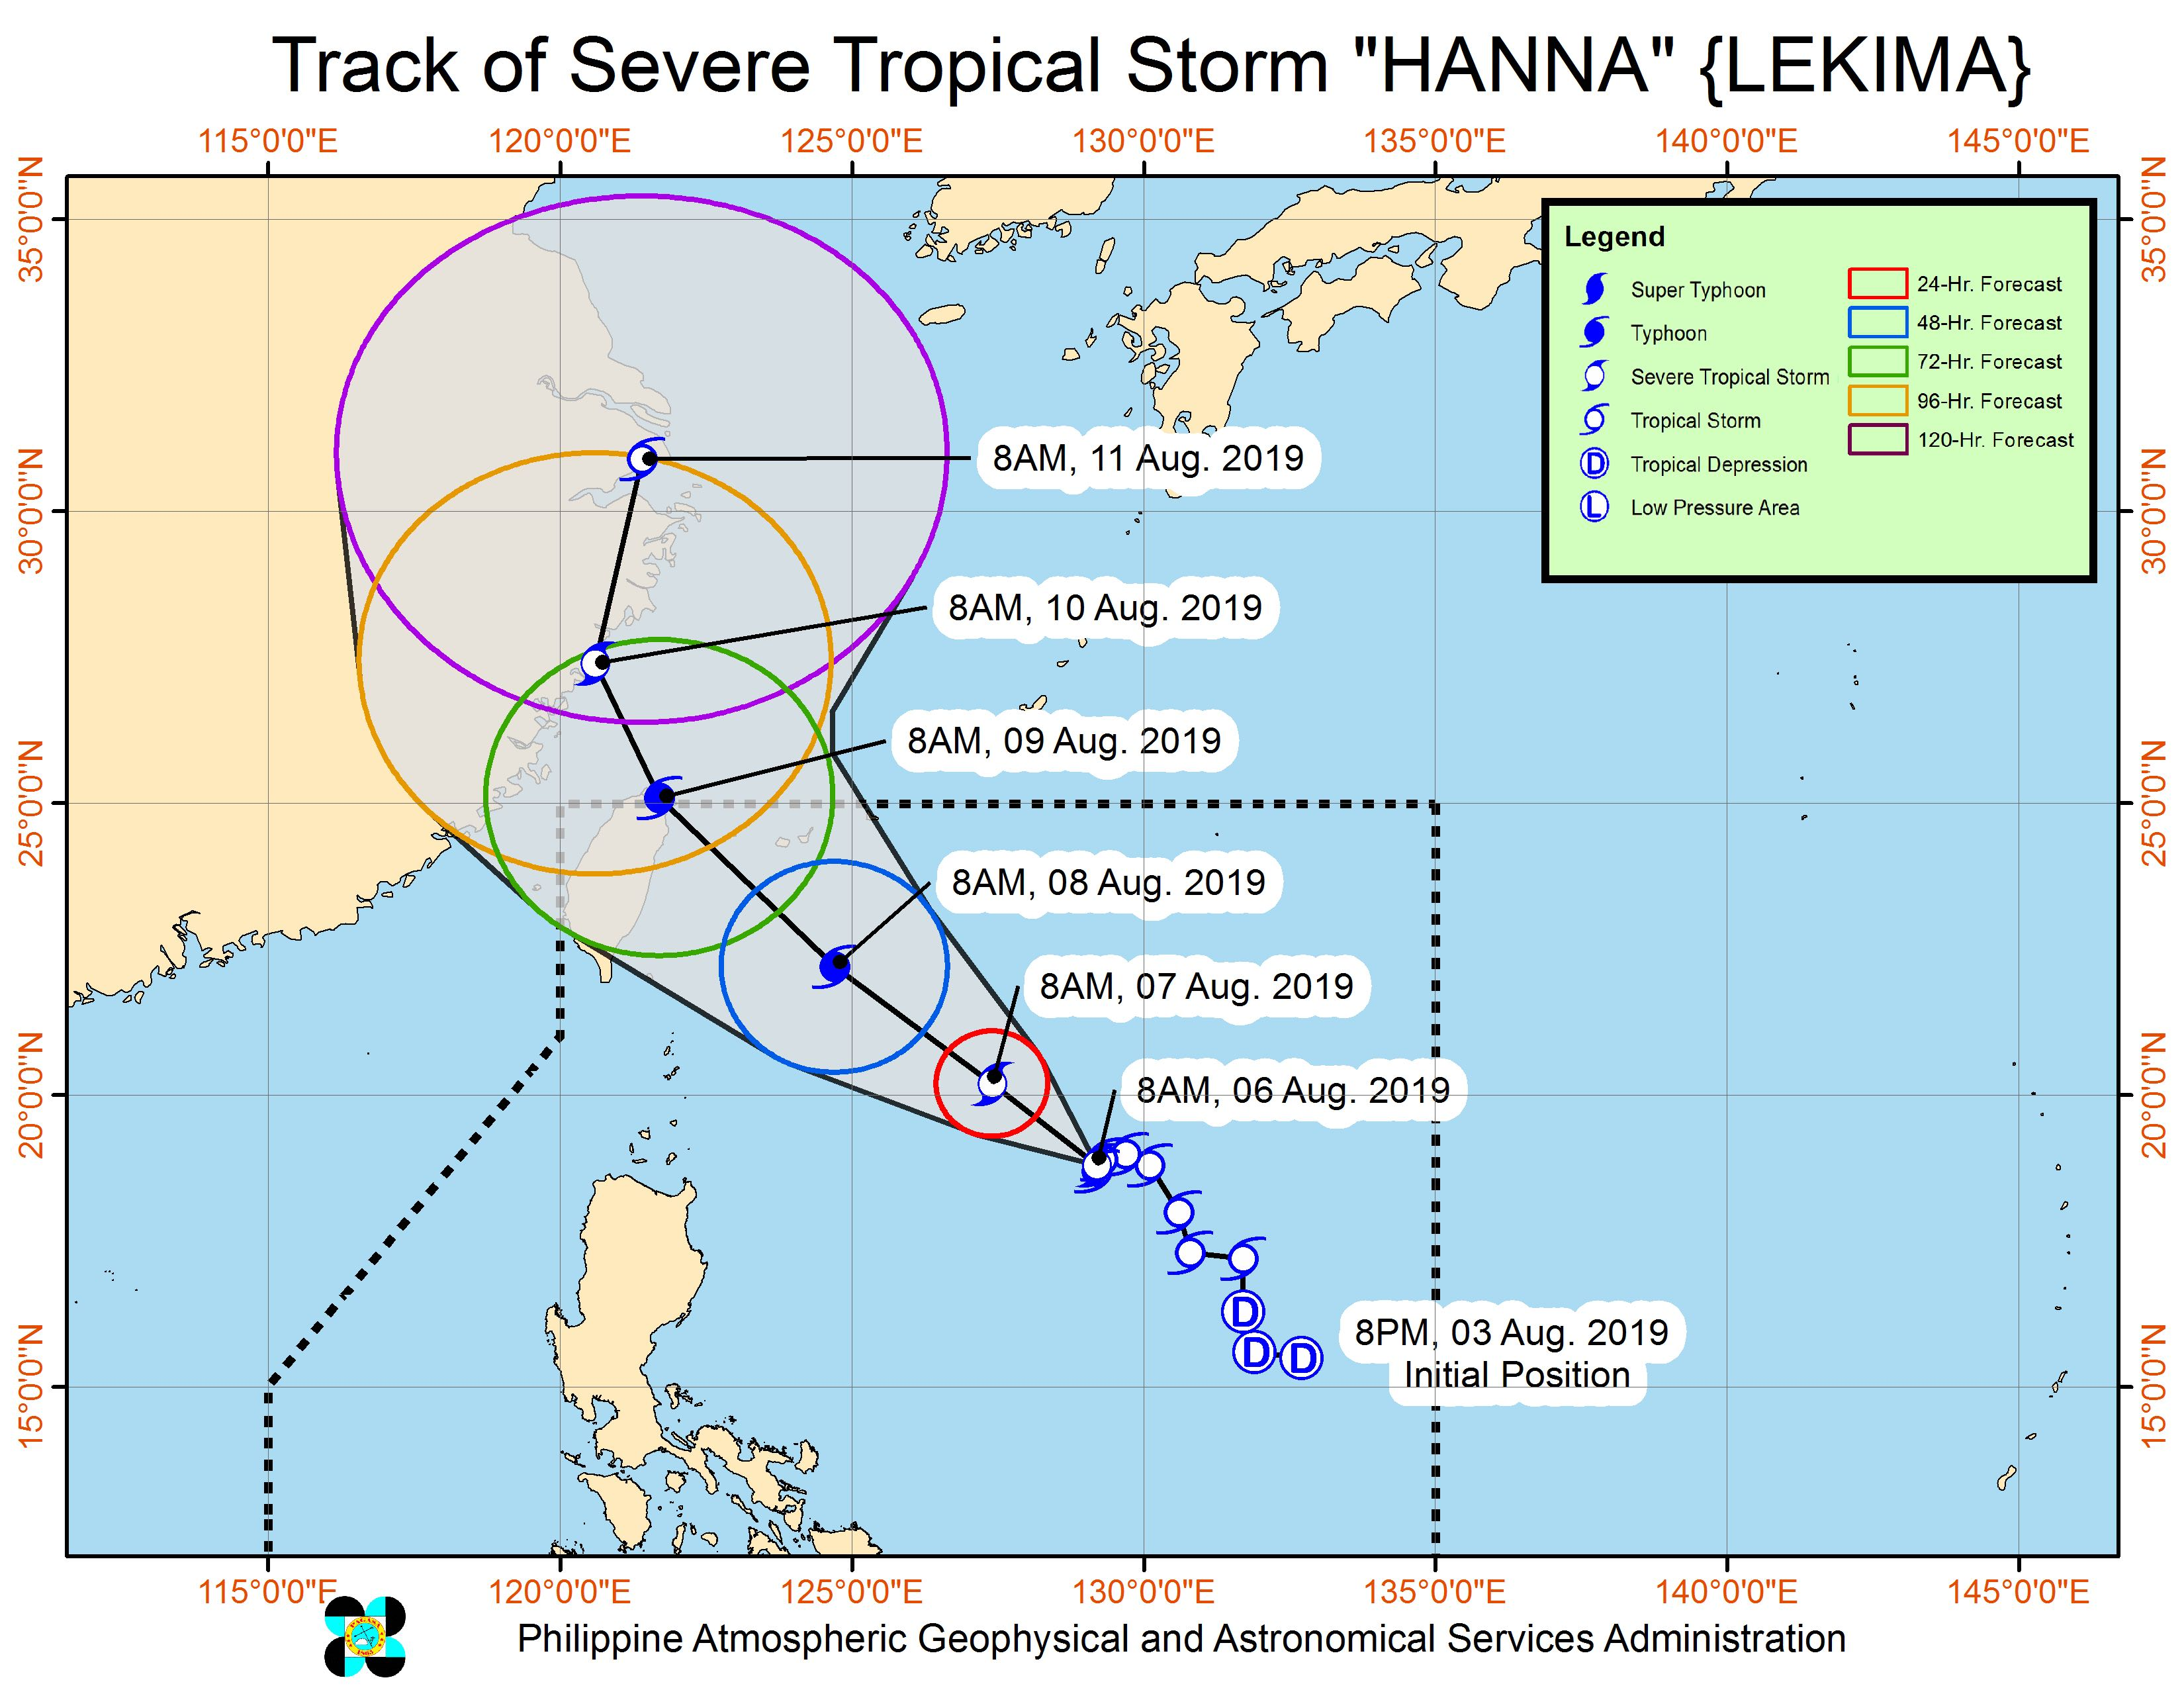 Forecast track of Severe Tropical Storm Hanna (Lekima) as of August 6, 2019, 11 am. Image from PAGASA